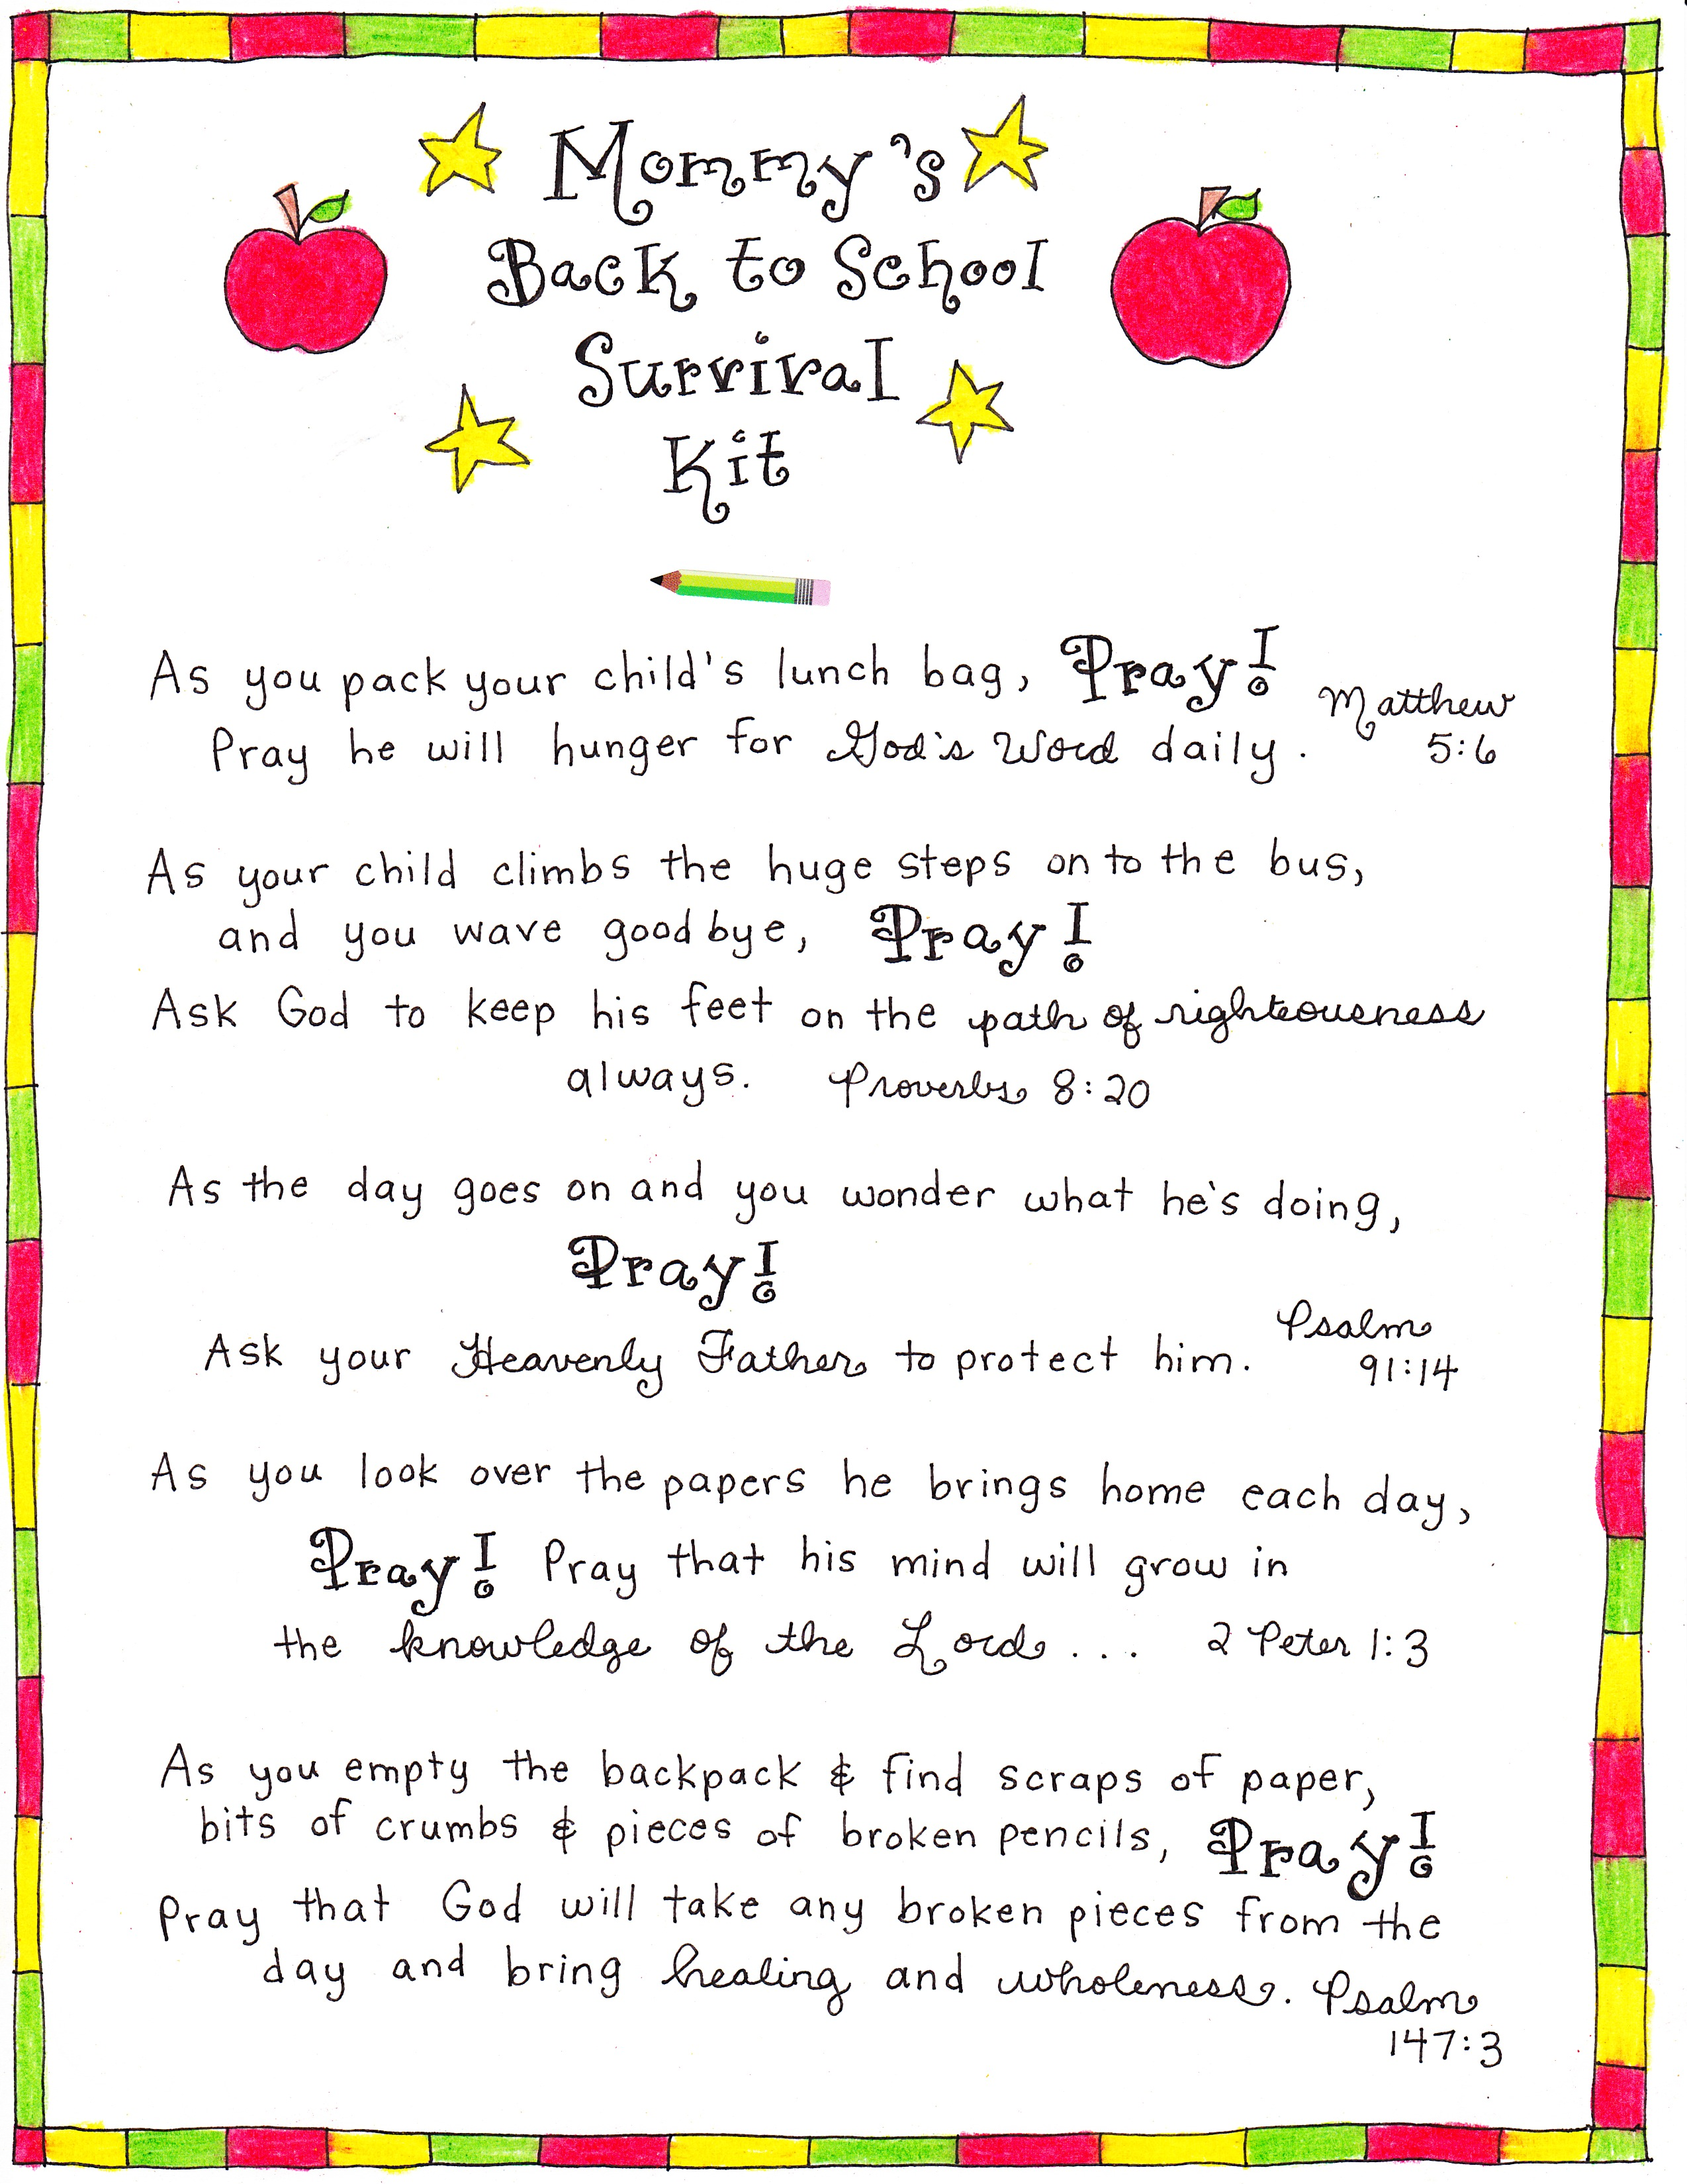 Mommy's Back to School Survival Kit - Happy Home Fairy